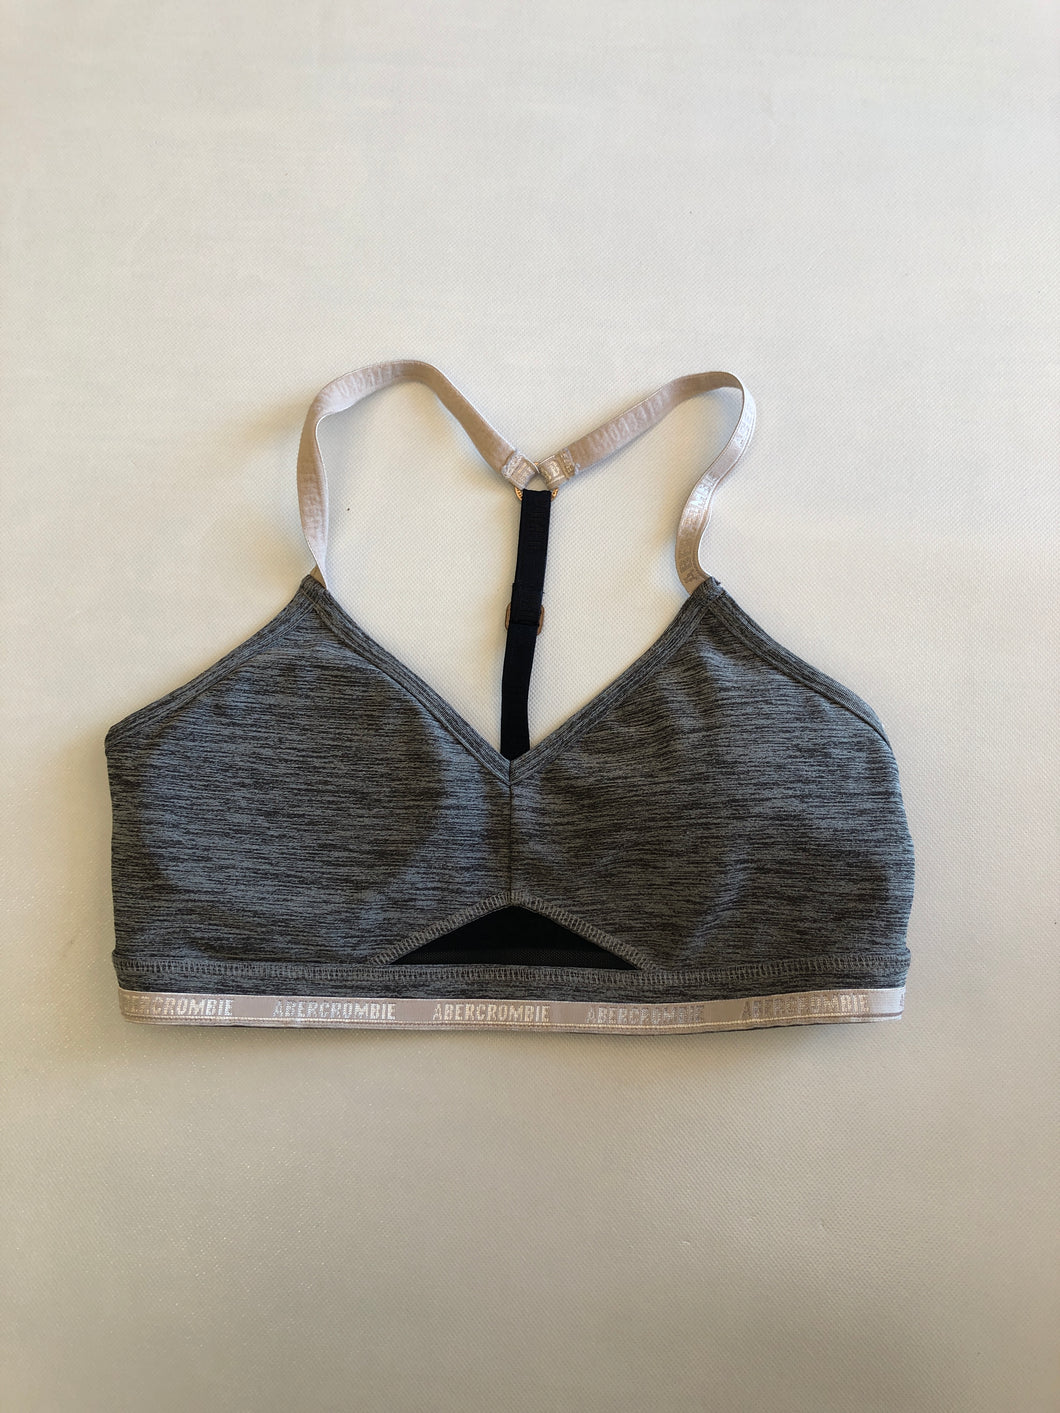 Abercrombie & Fitch Womens Athletic Top Size Small